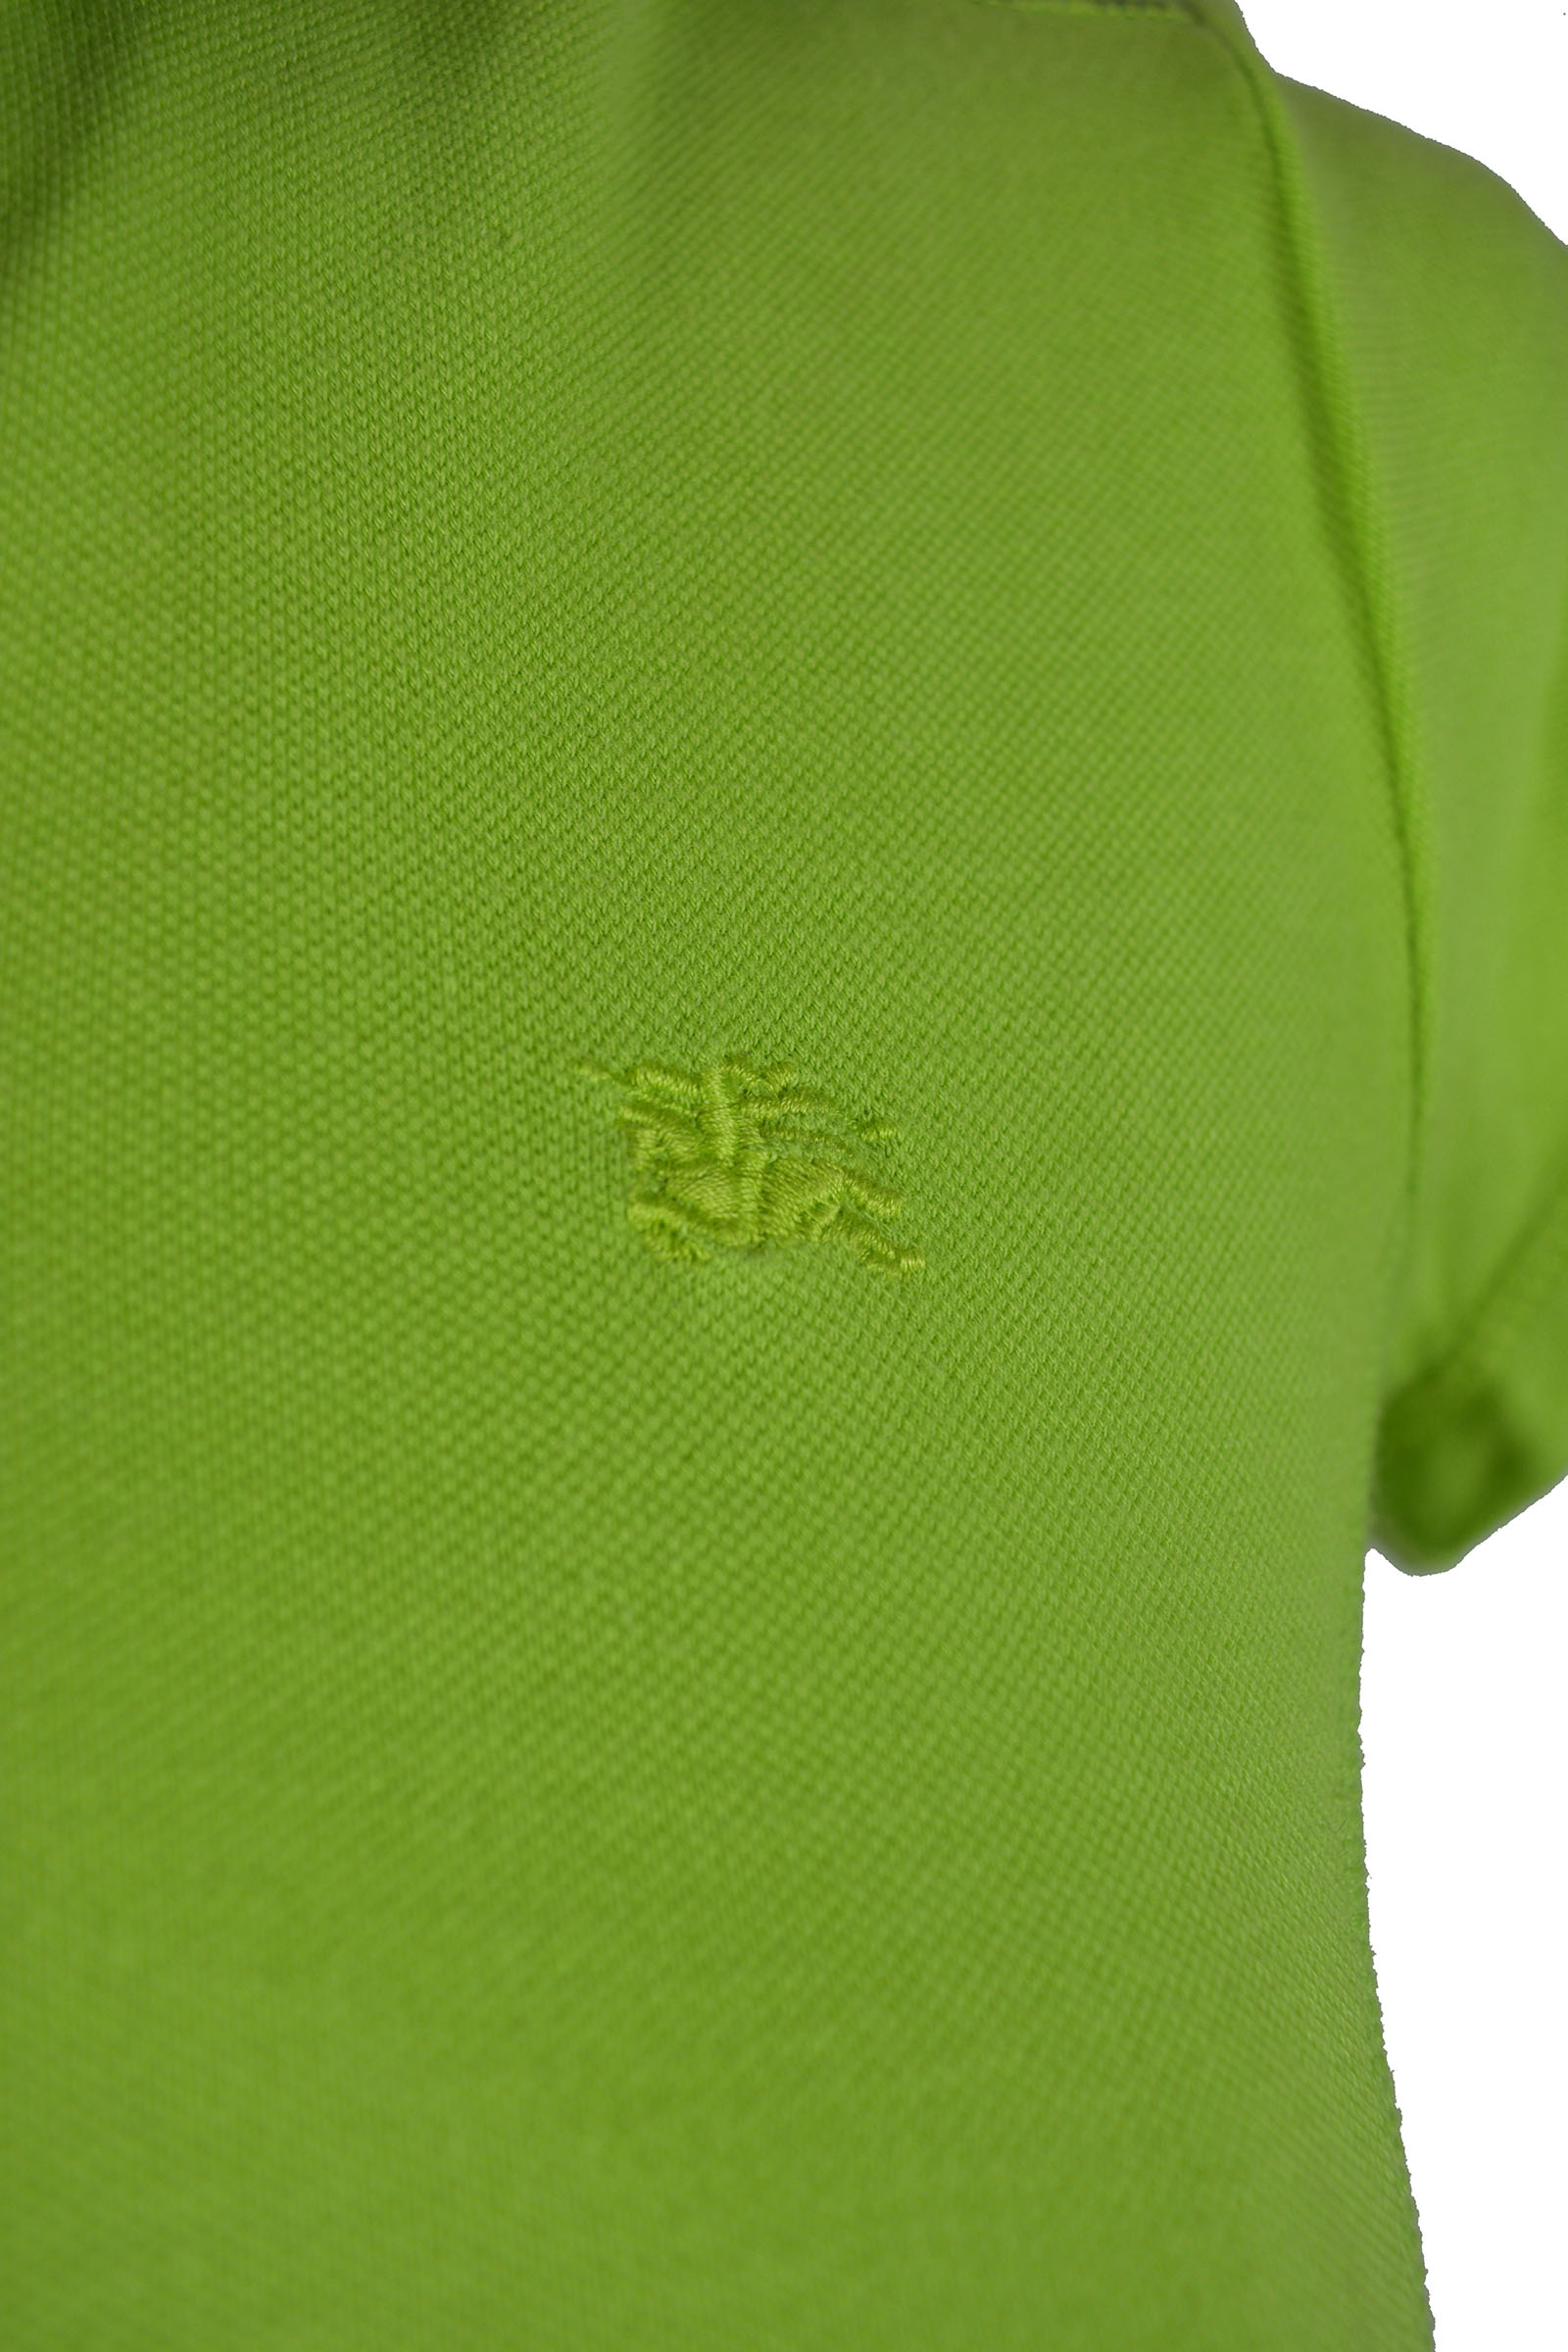 Burberry Polo Shirt in Light Green and Check Pattern Details Size 38 (EU)